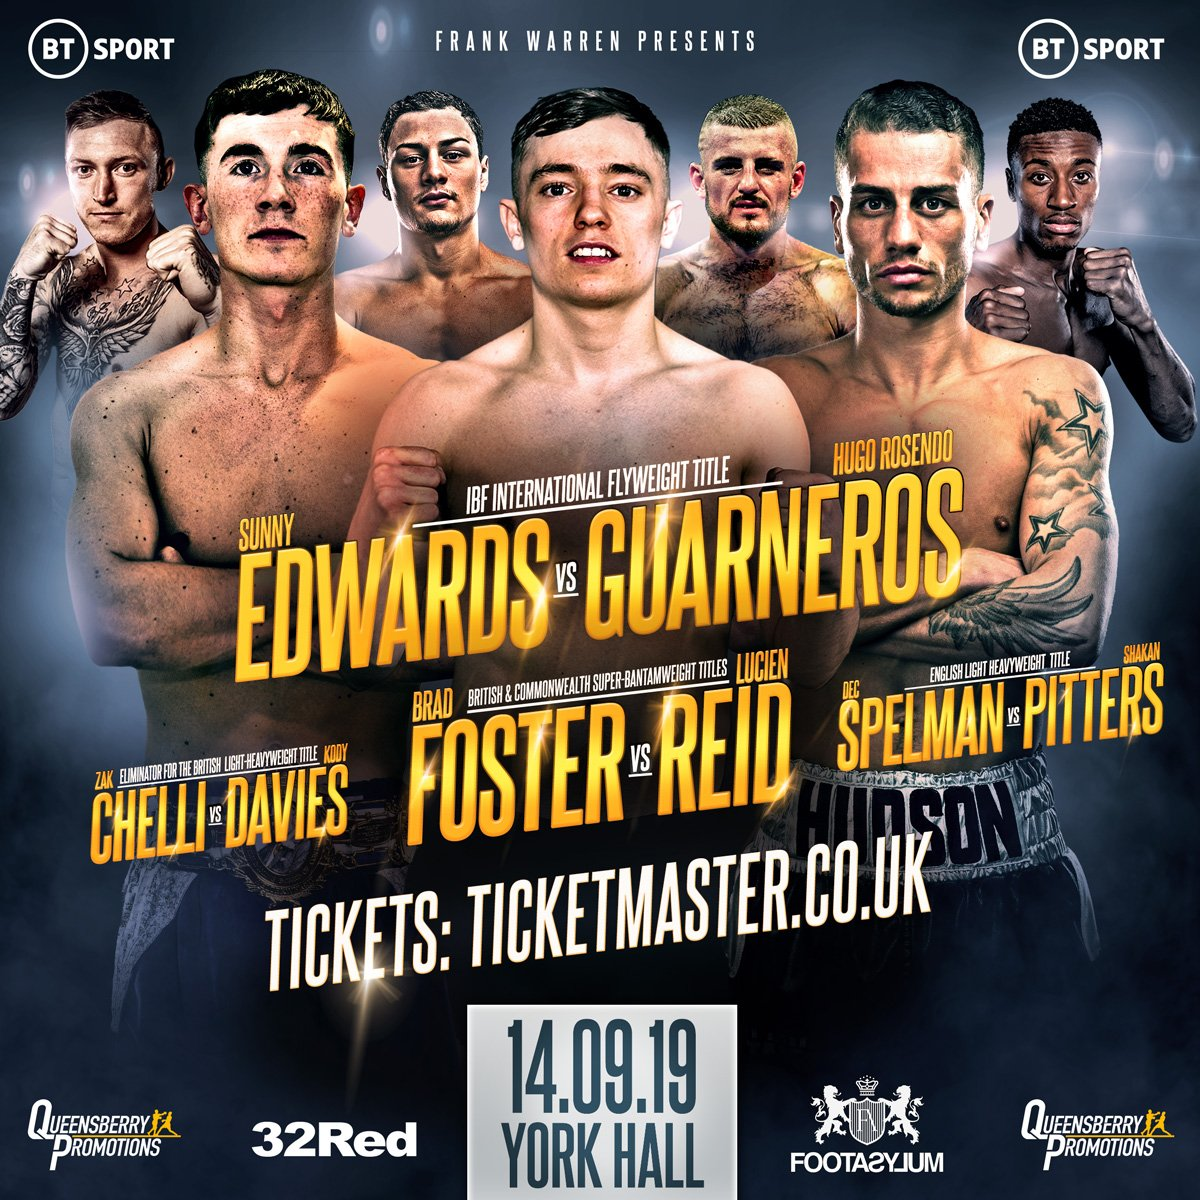 Sunny Edwards - FRANK WARREN and Queensberry Promotions return to York Hall on Saturday September 14 with a triple bill of title fights starring some of British boxing's finest prospects, live on BT Sport.